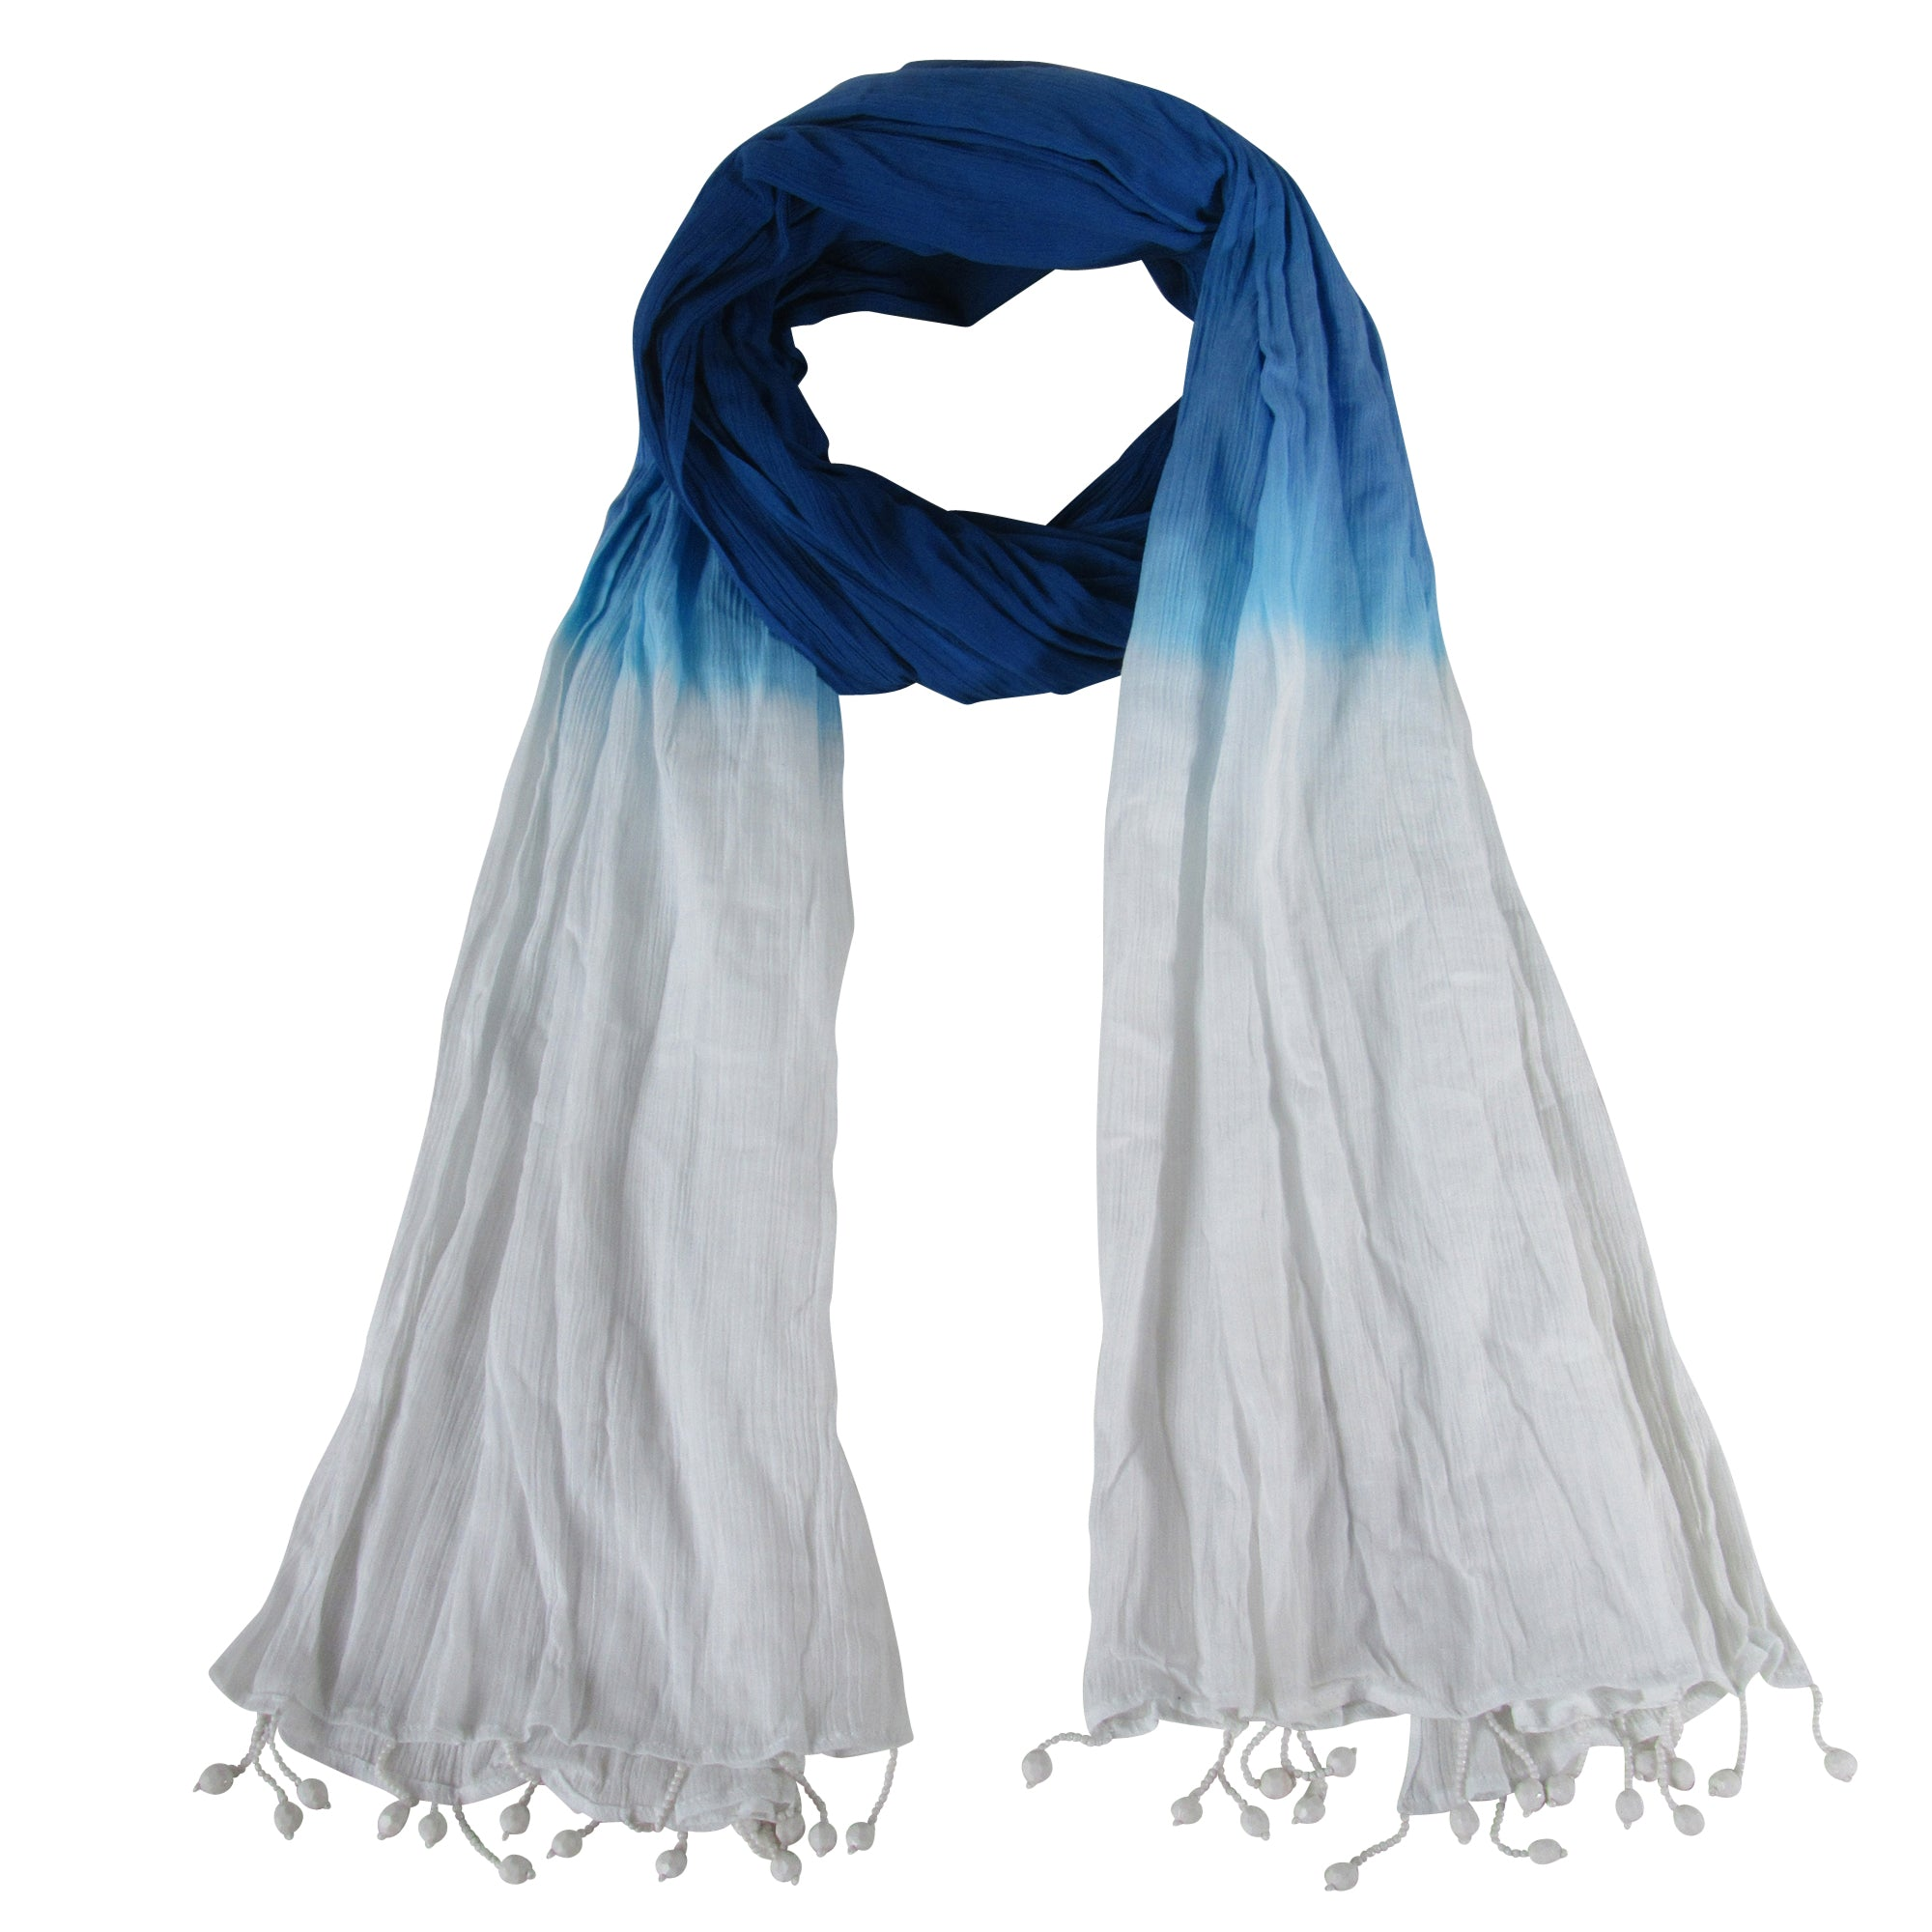 Handmade Wide Scarf Cotton Fabric Tie Dye Blue Navy Ombre